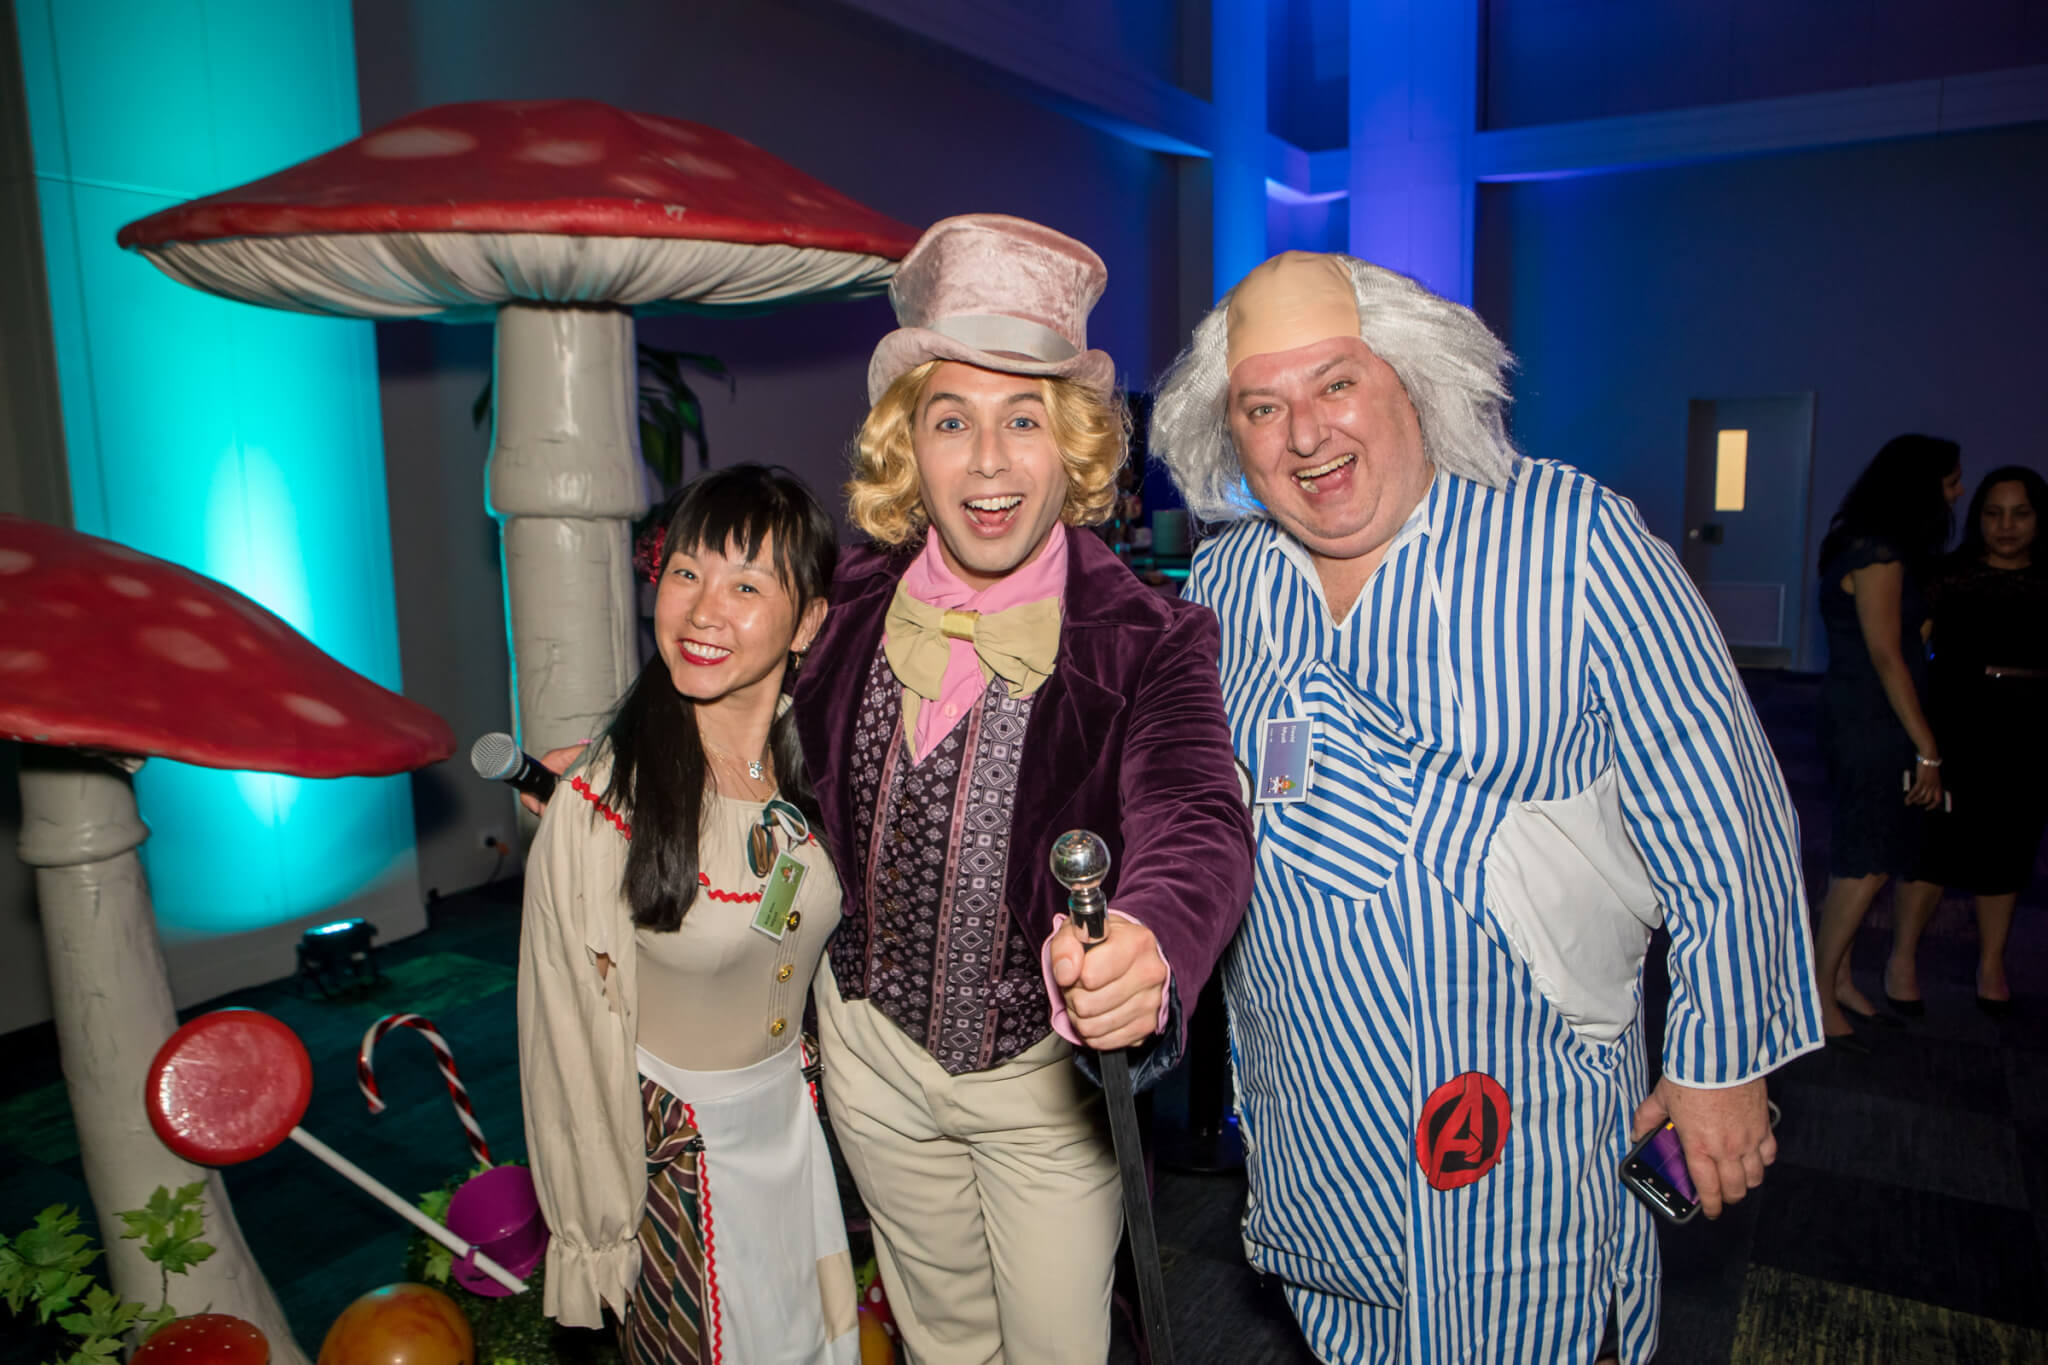 Willy Wonka Event Theme